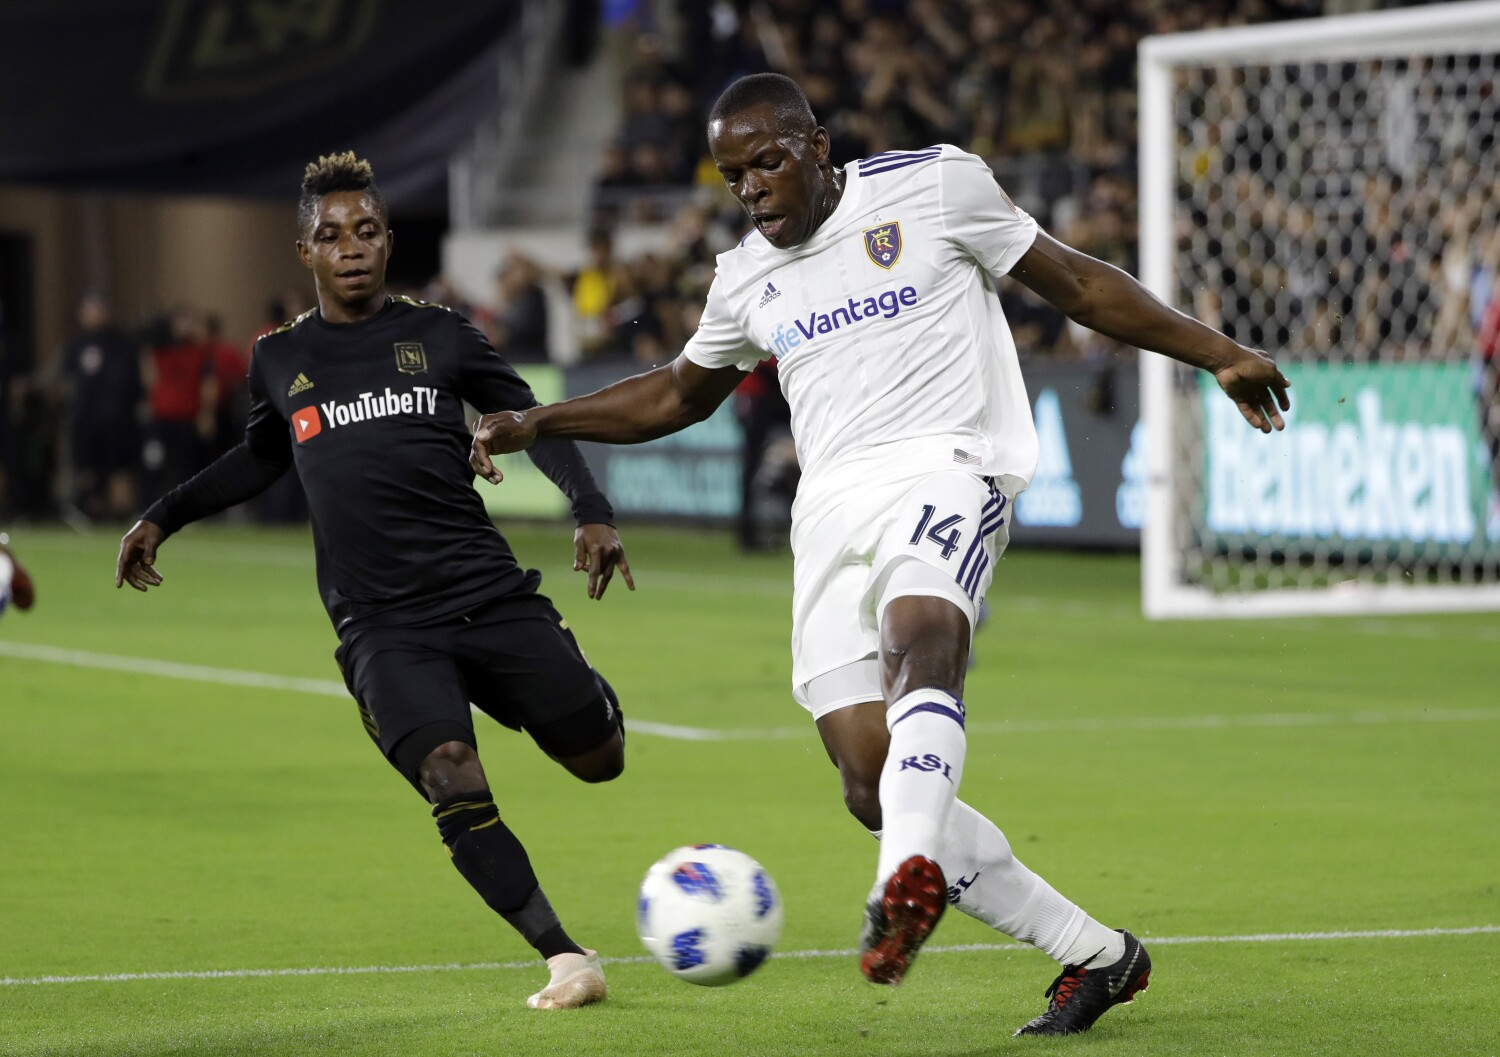 MLS players Nedum Onuoha and Mark-Anthony Kaye discuss their own racism experiences